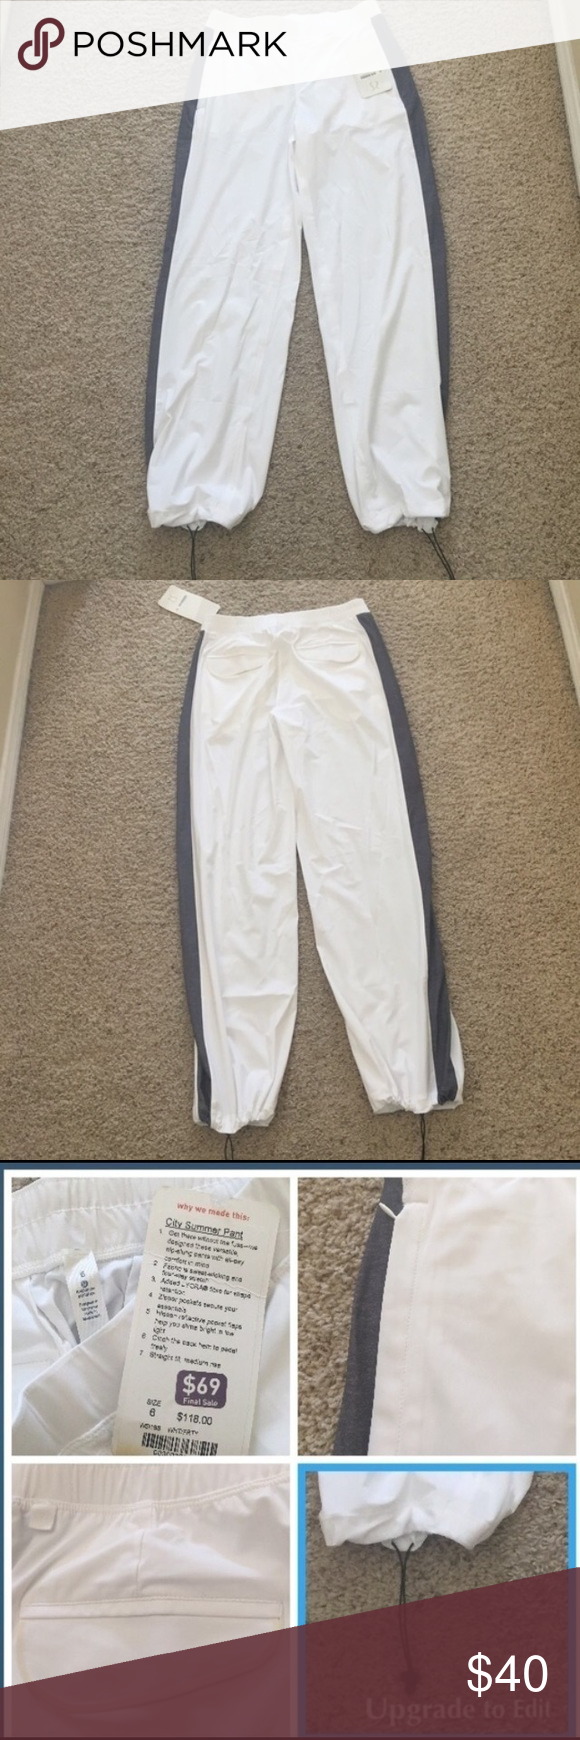 "Lululemon ""City Summer Pants"". NWT Never wore. Nice Lightweight pants with zipper front pockets and two back pockets. Ties at the bottom to loosen or gather. Inseam 29"". Size 6 lululemon athletica Pants"